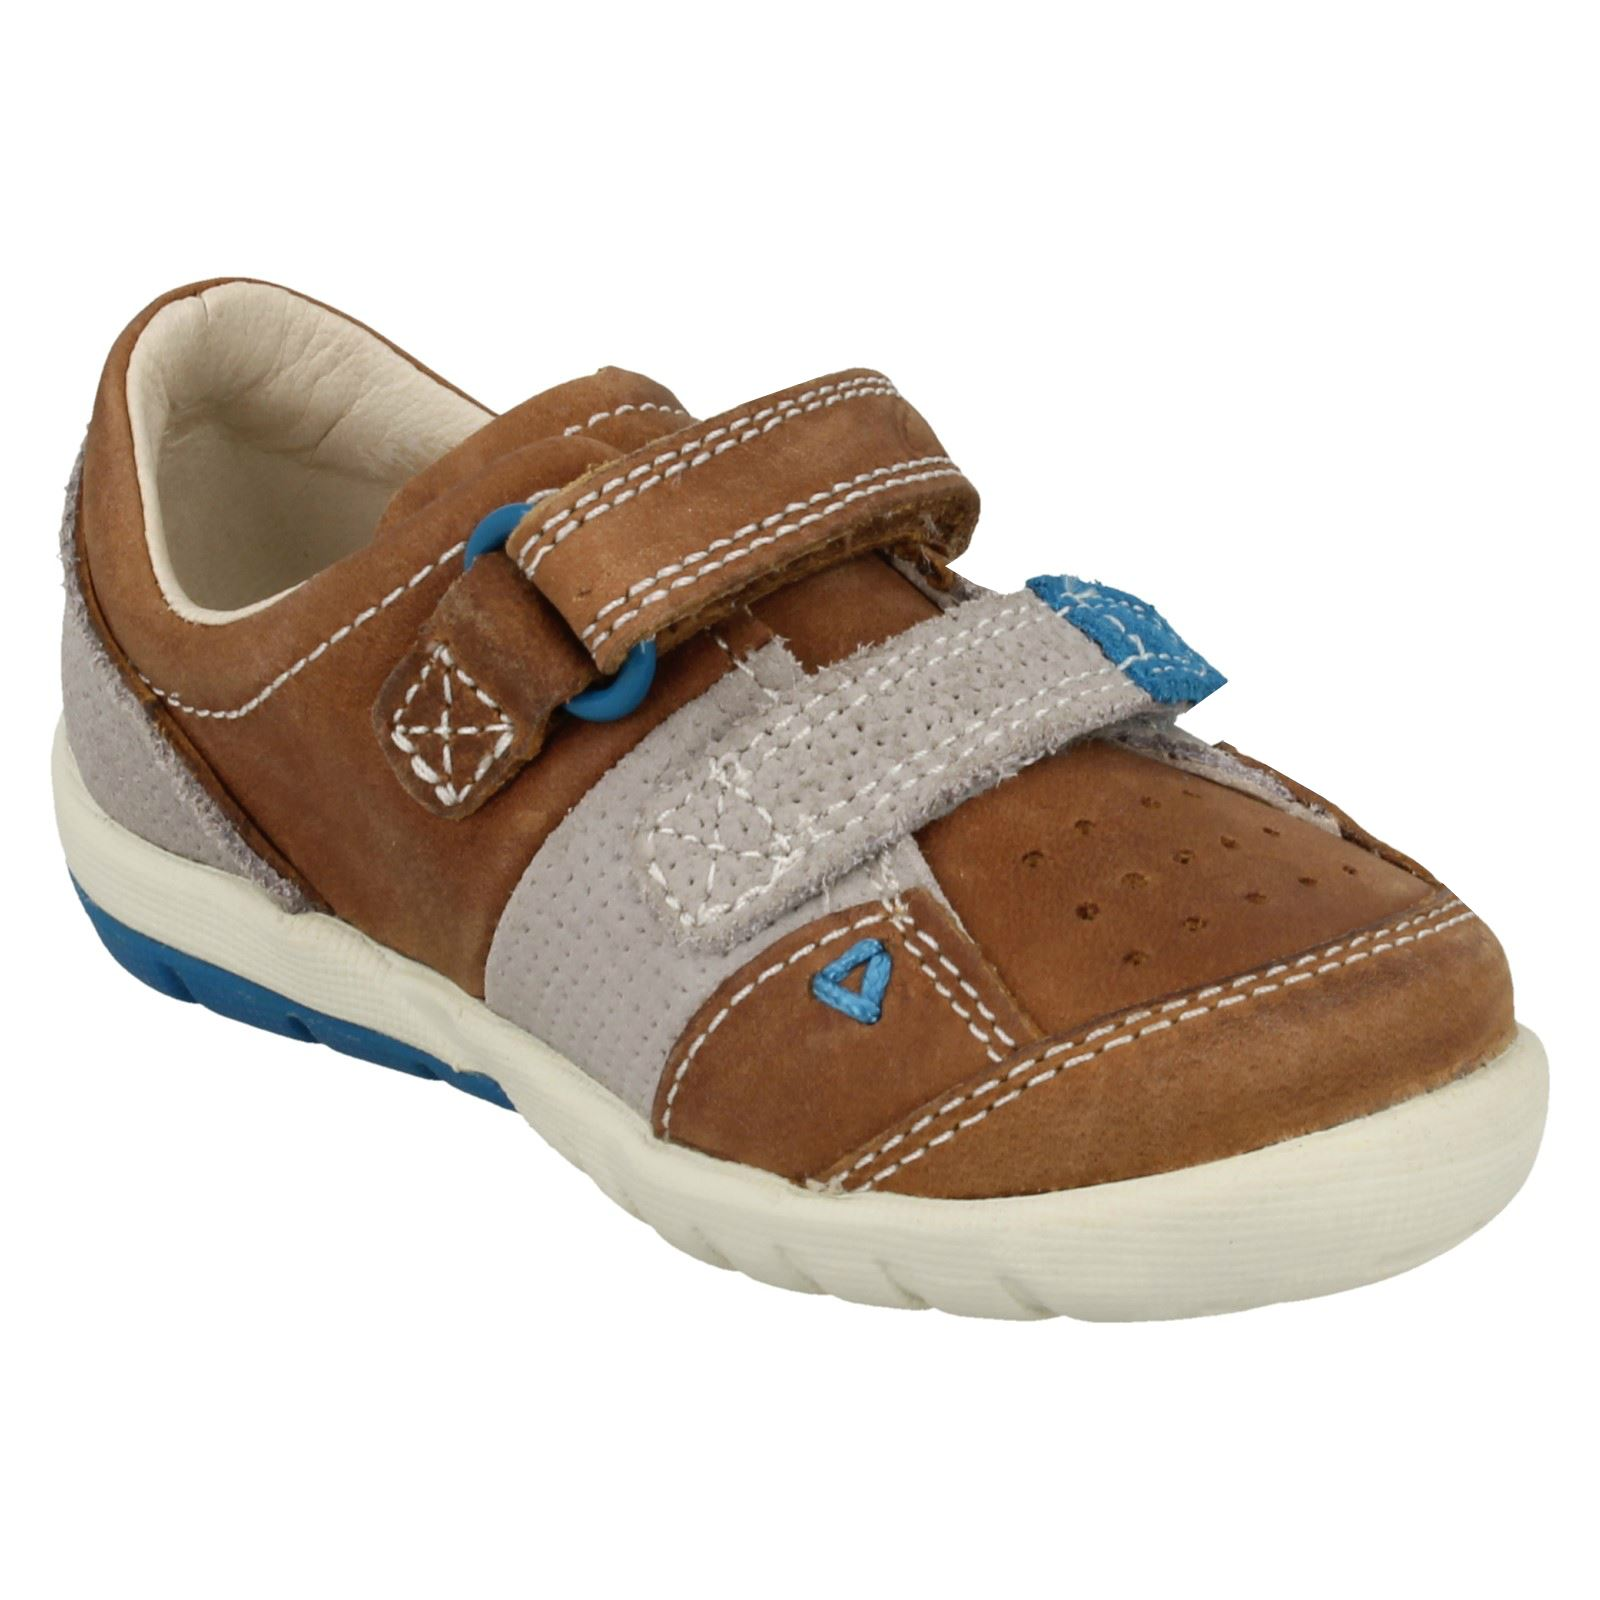 Clarks Boys First Shoes - Softly Mac